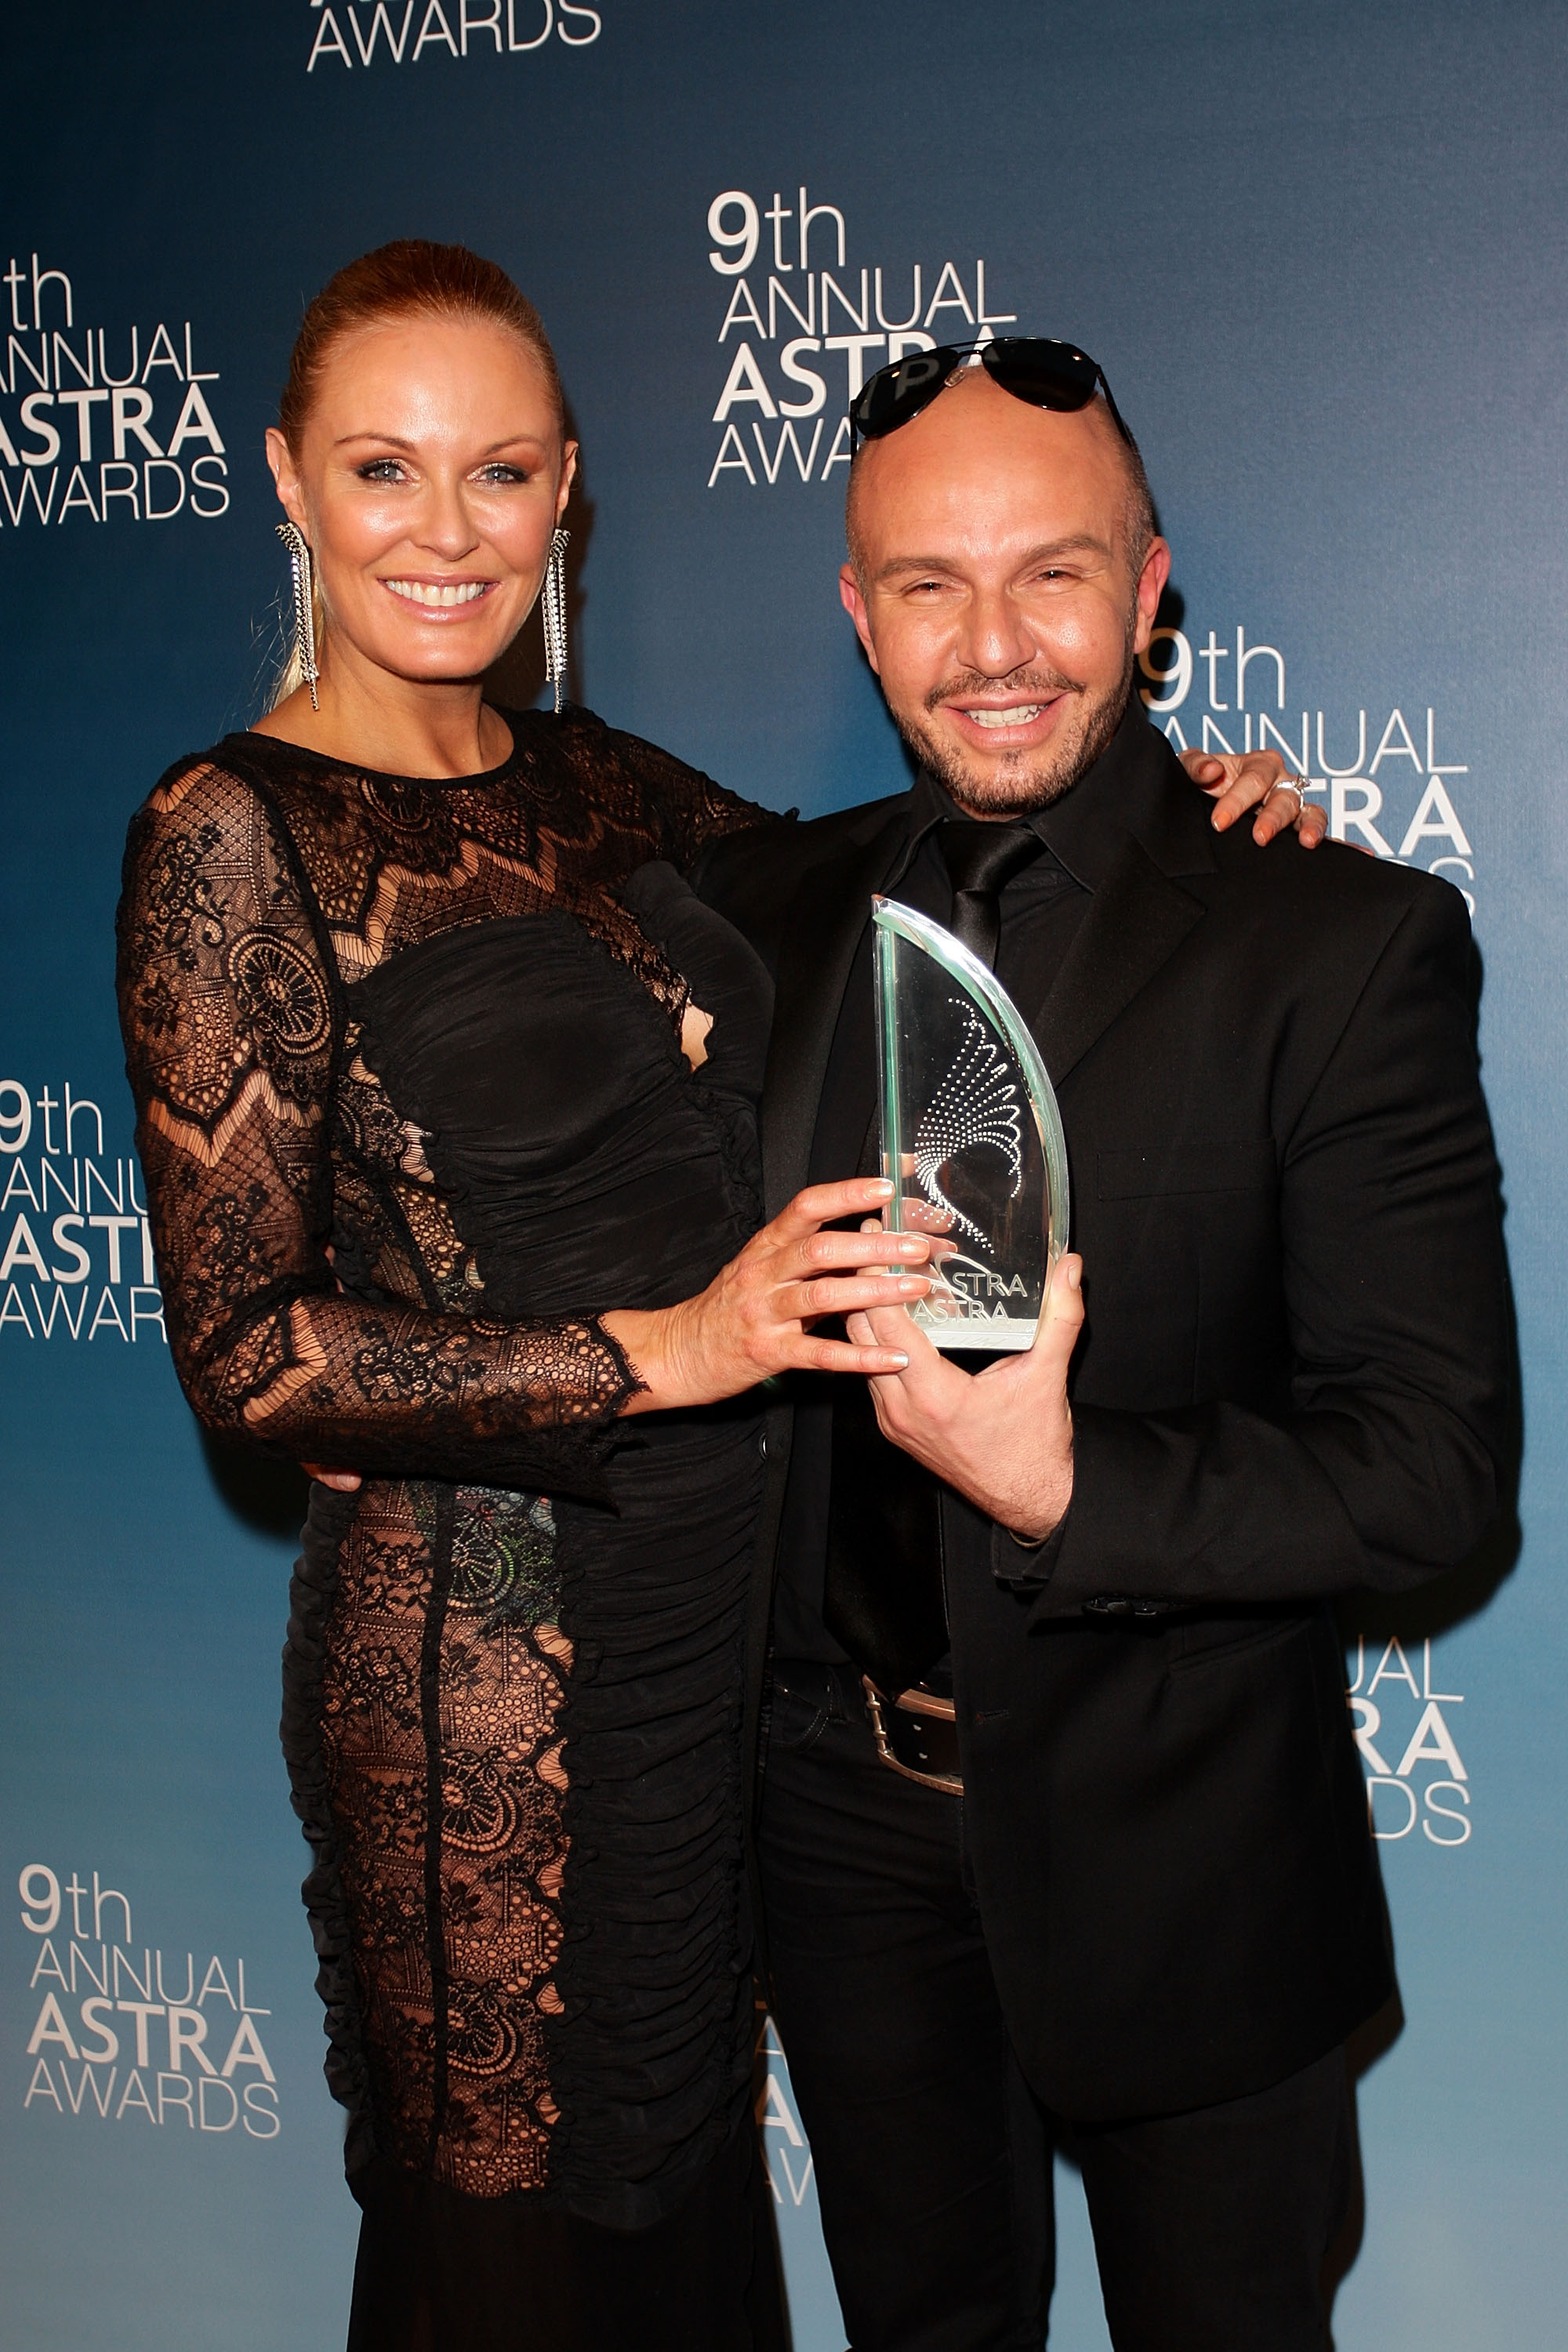 Charlotte Dawson and Alex Perry